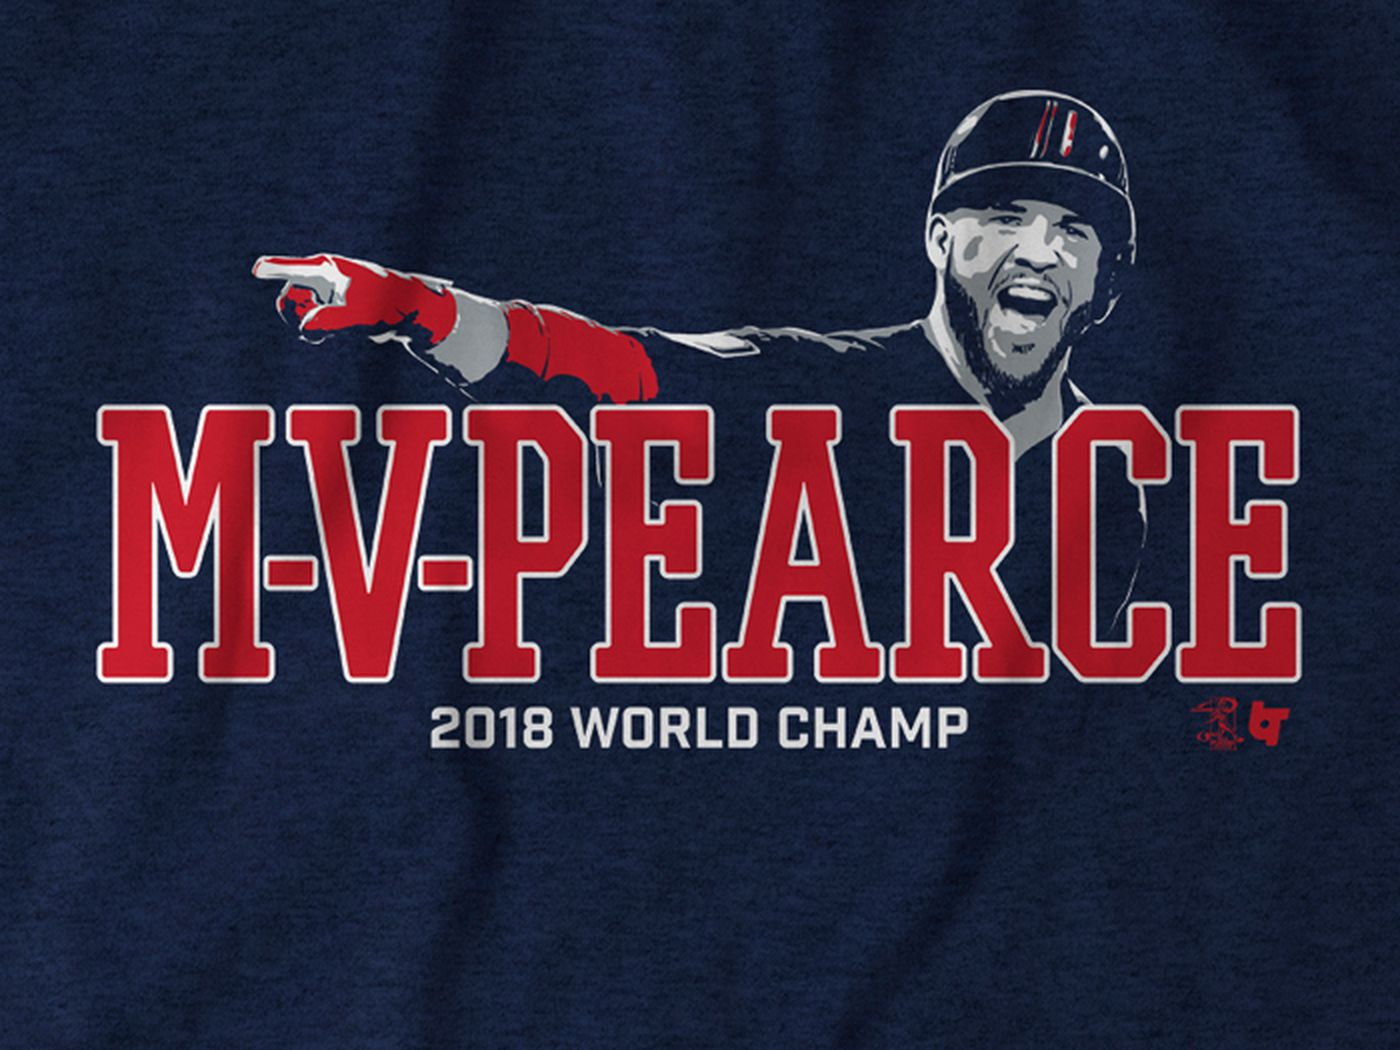 new concept bbca3 b5746 Red Sox World Series Shirt: Steve Pearce is the MVP - Over ...